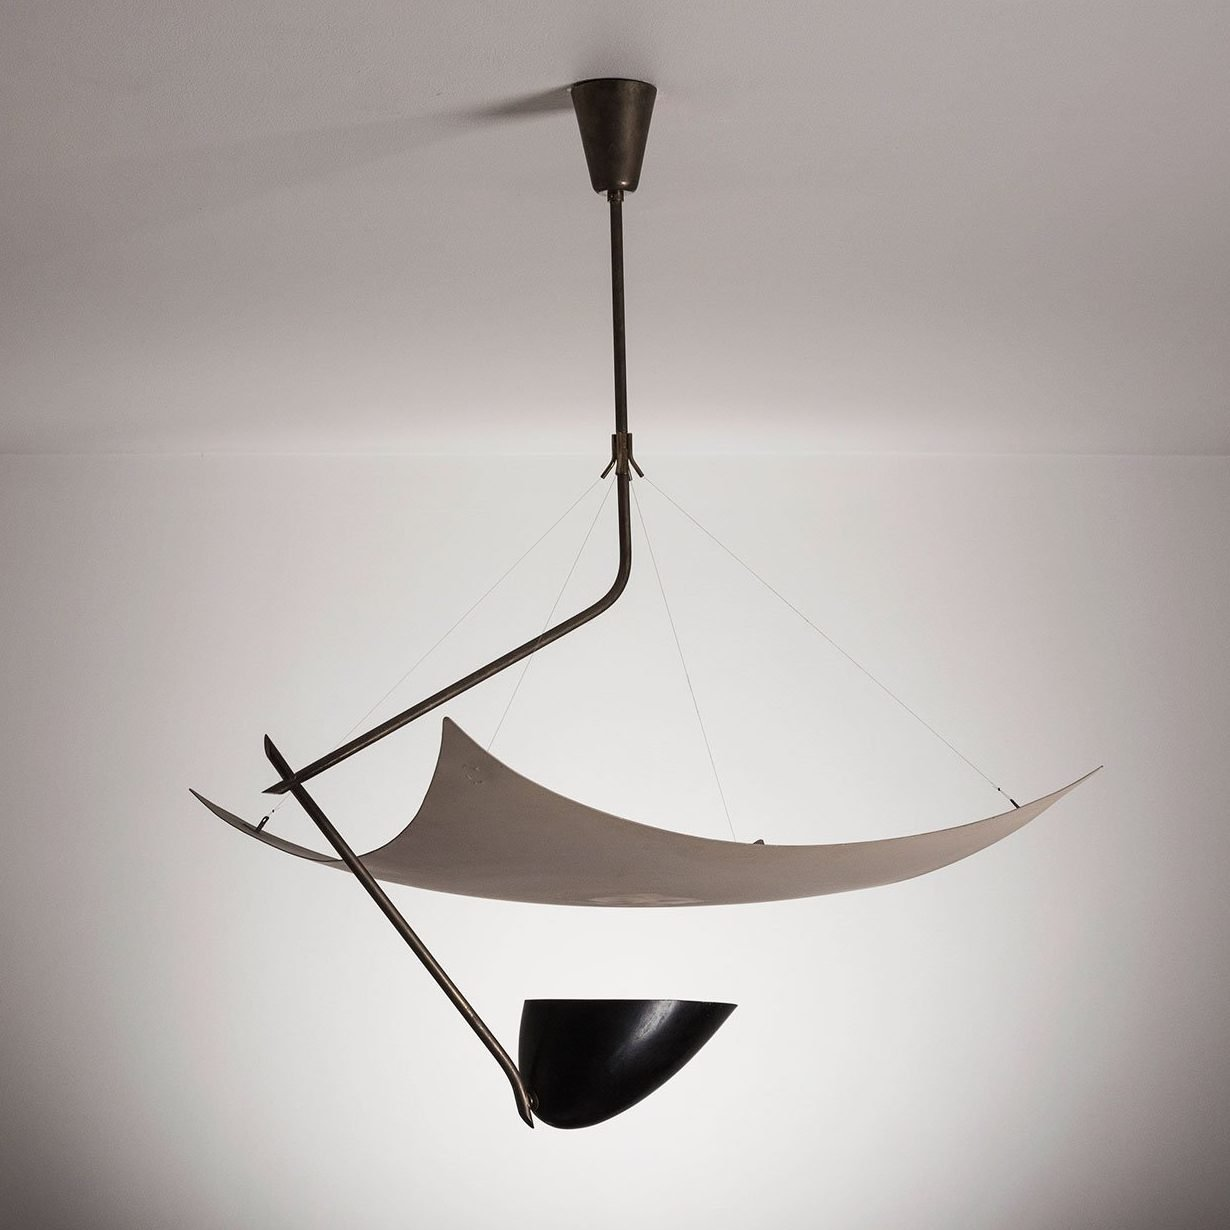 Angelo Lelii ceiling lamp by Arredoluce at Italian furniture and design gallery Casati Gallery